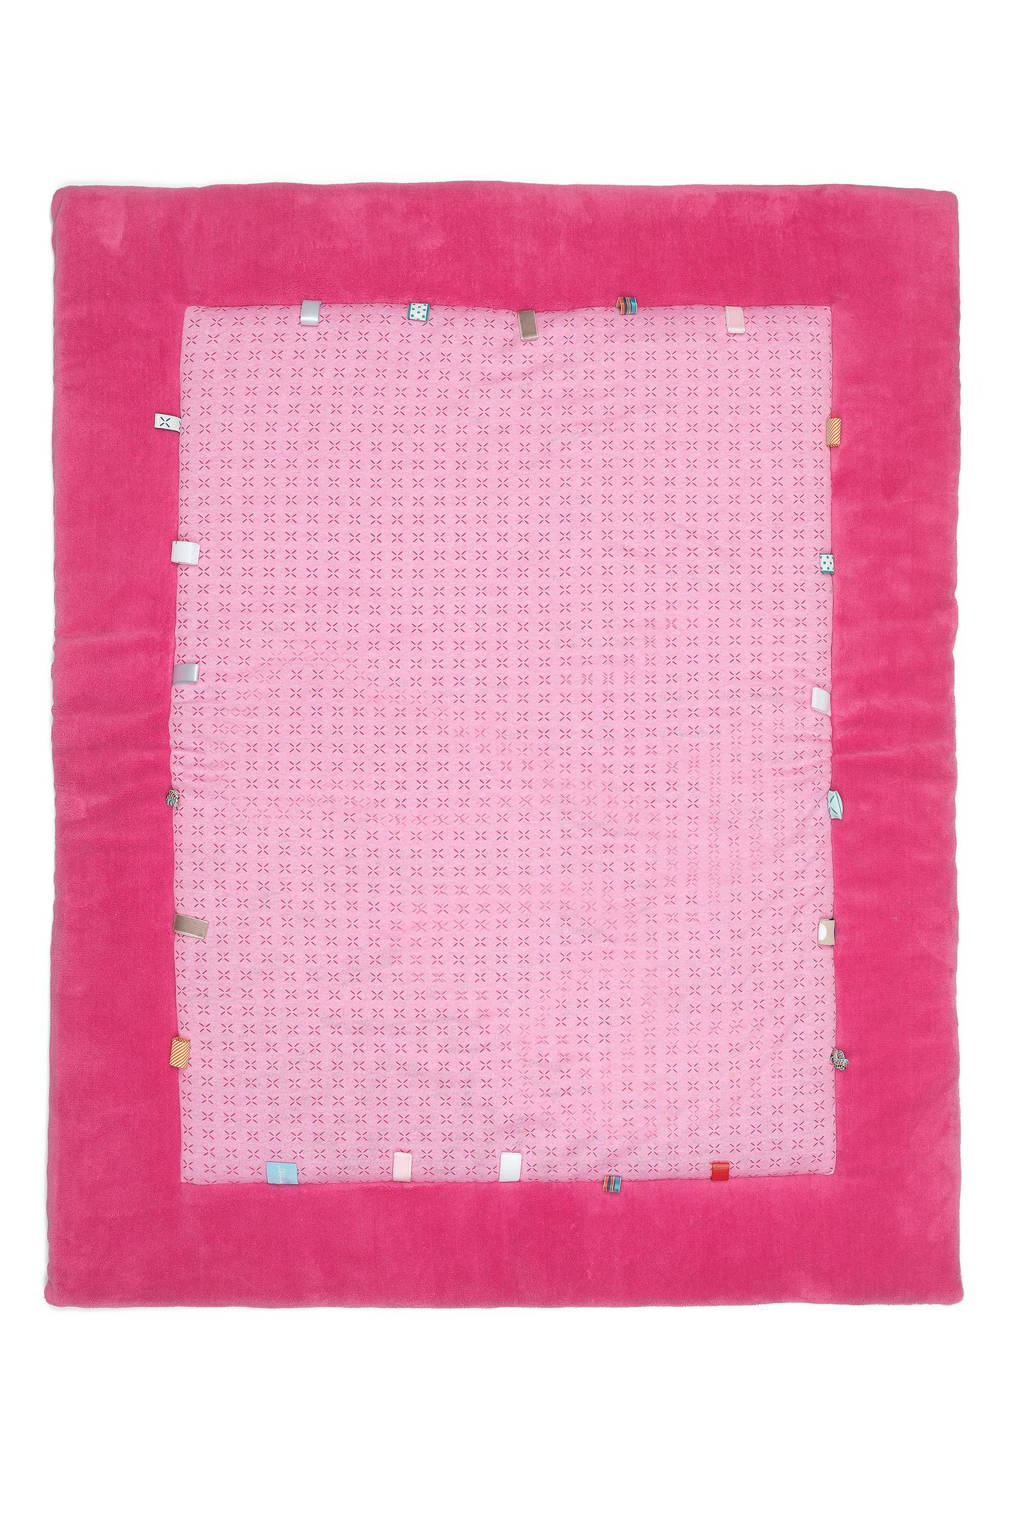 Snoozebaby Cheerful Playing boxkleed 85x105 cm funky pink, Funky Pink